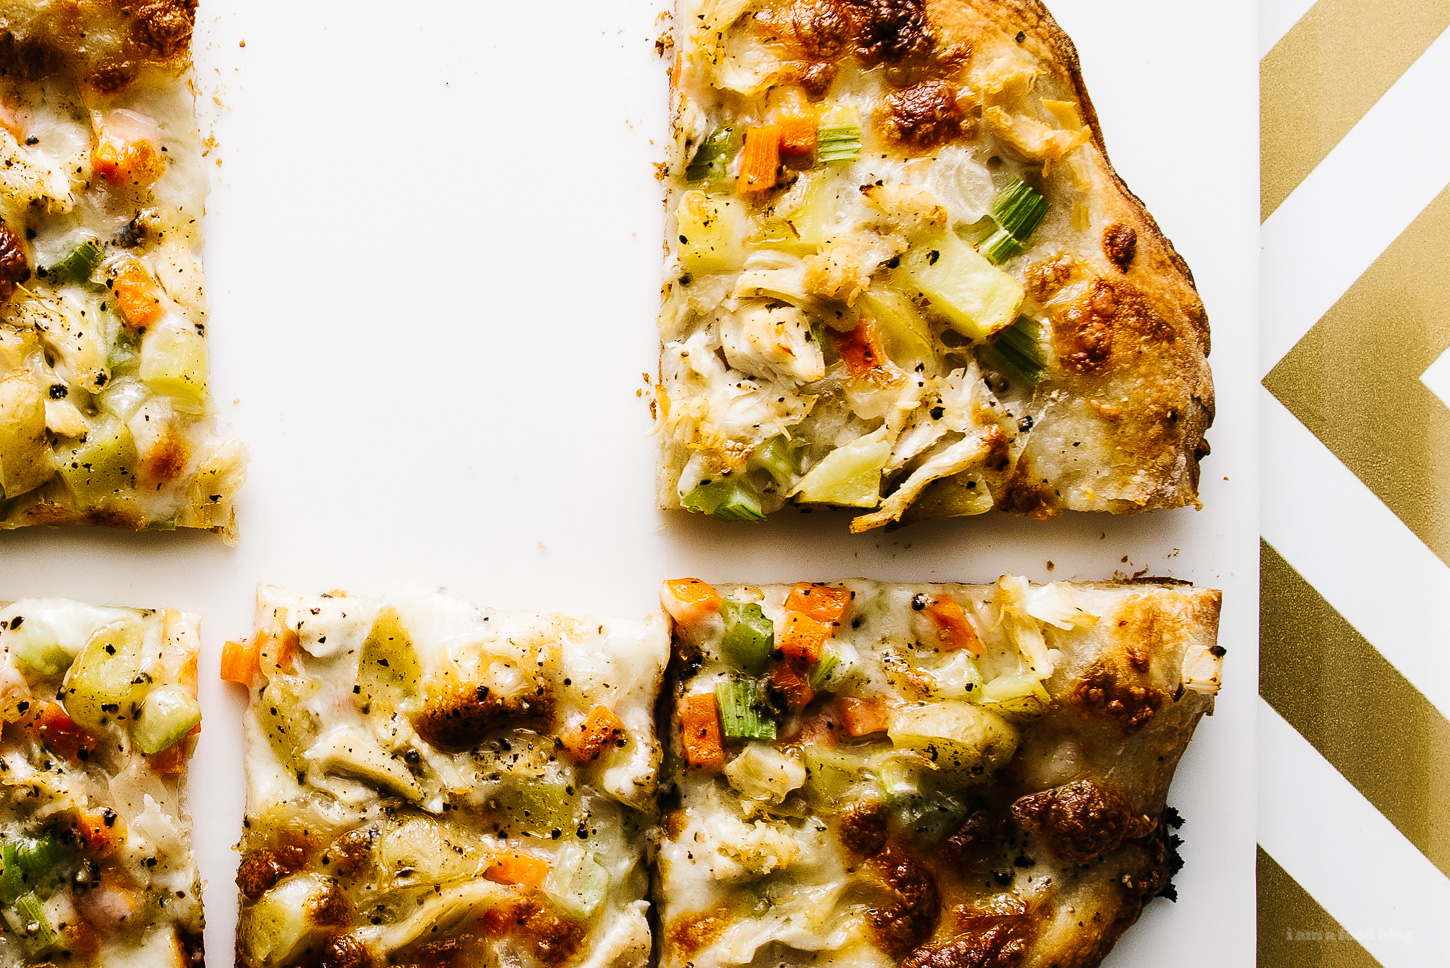 chicken pot pie pizza recipe - www.iamafoodblog.com